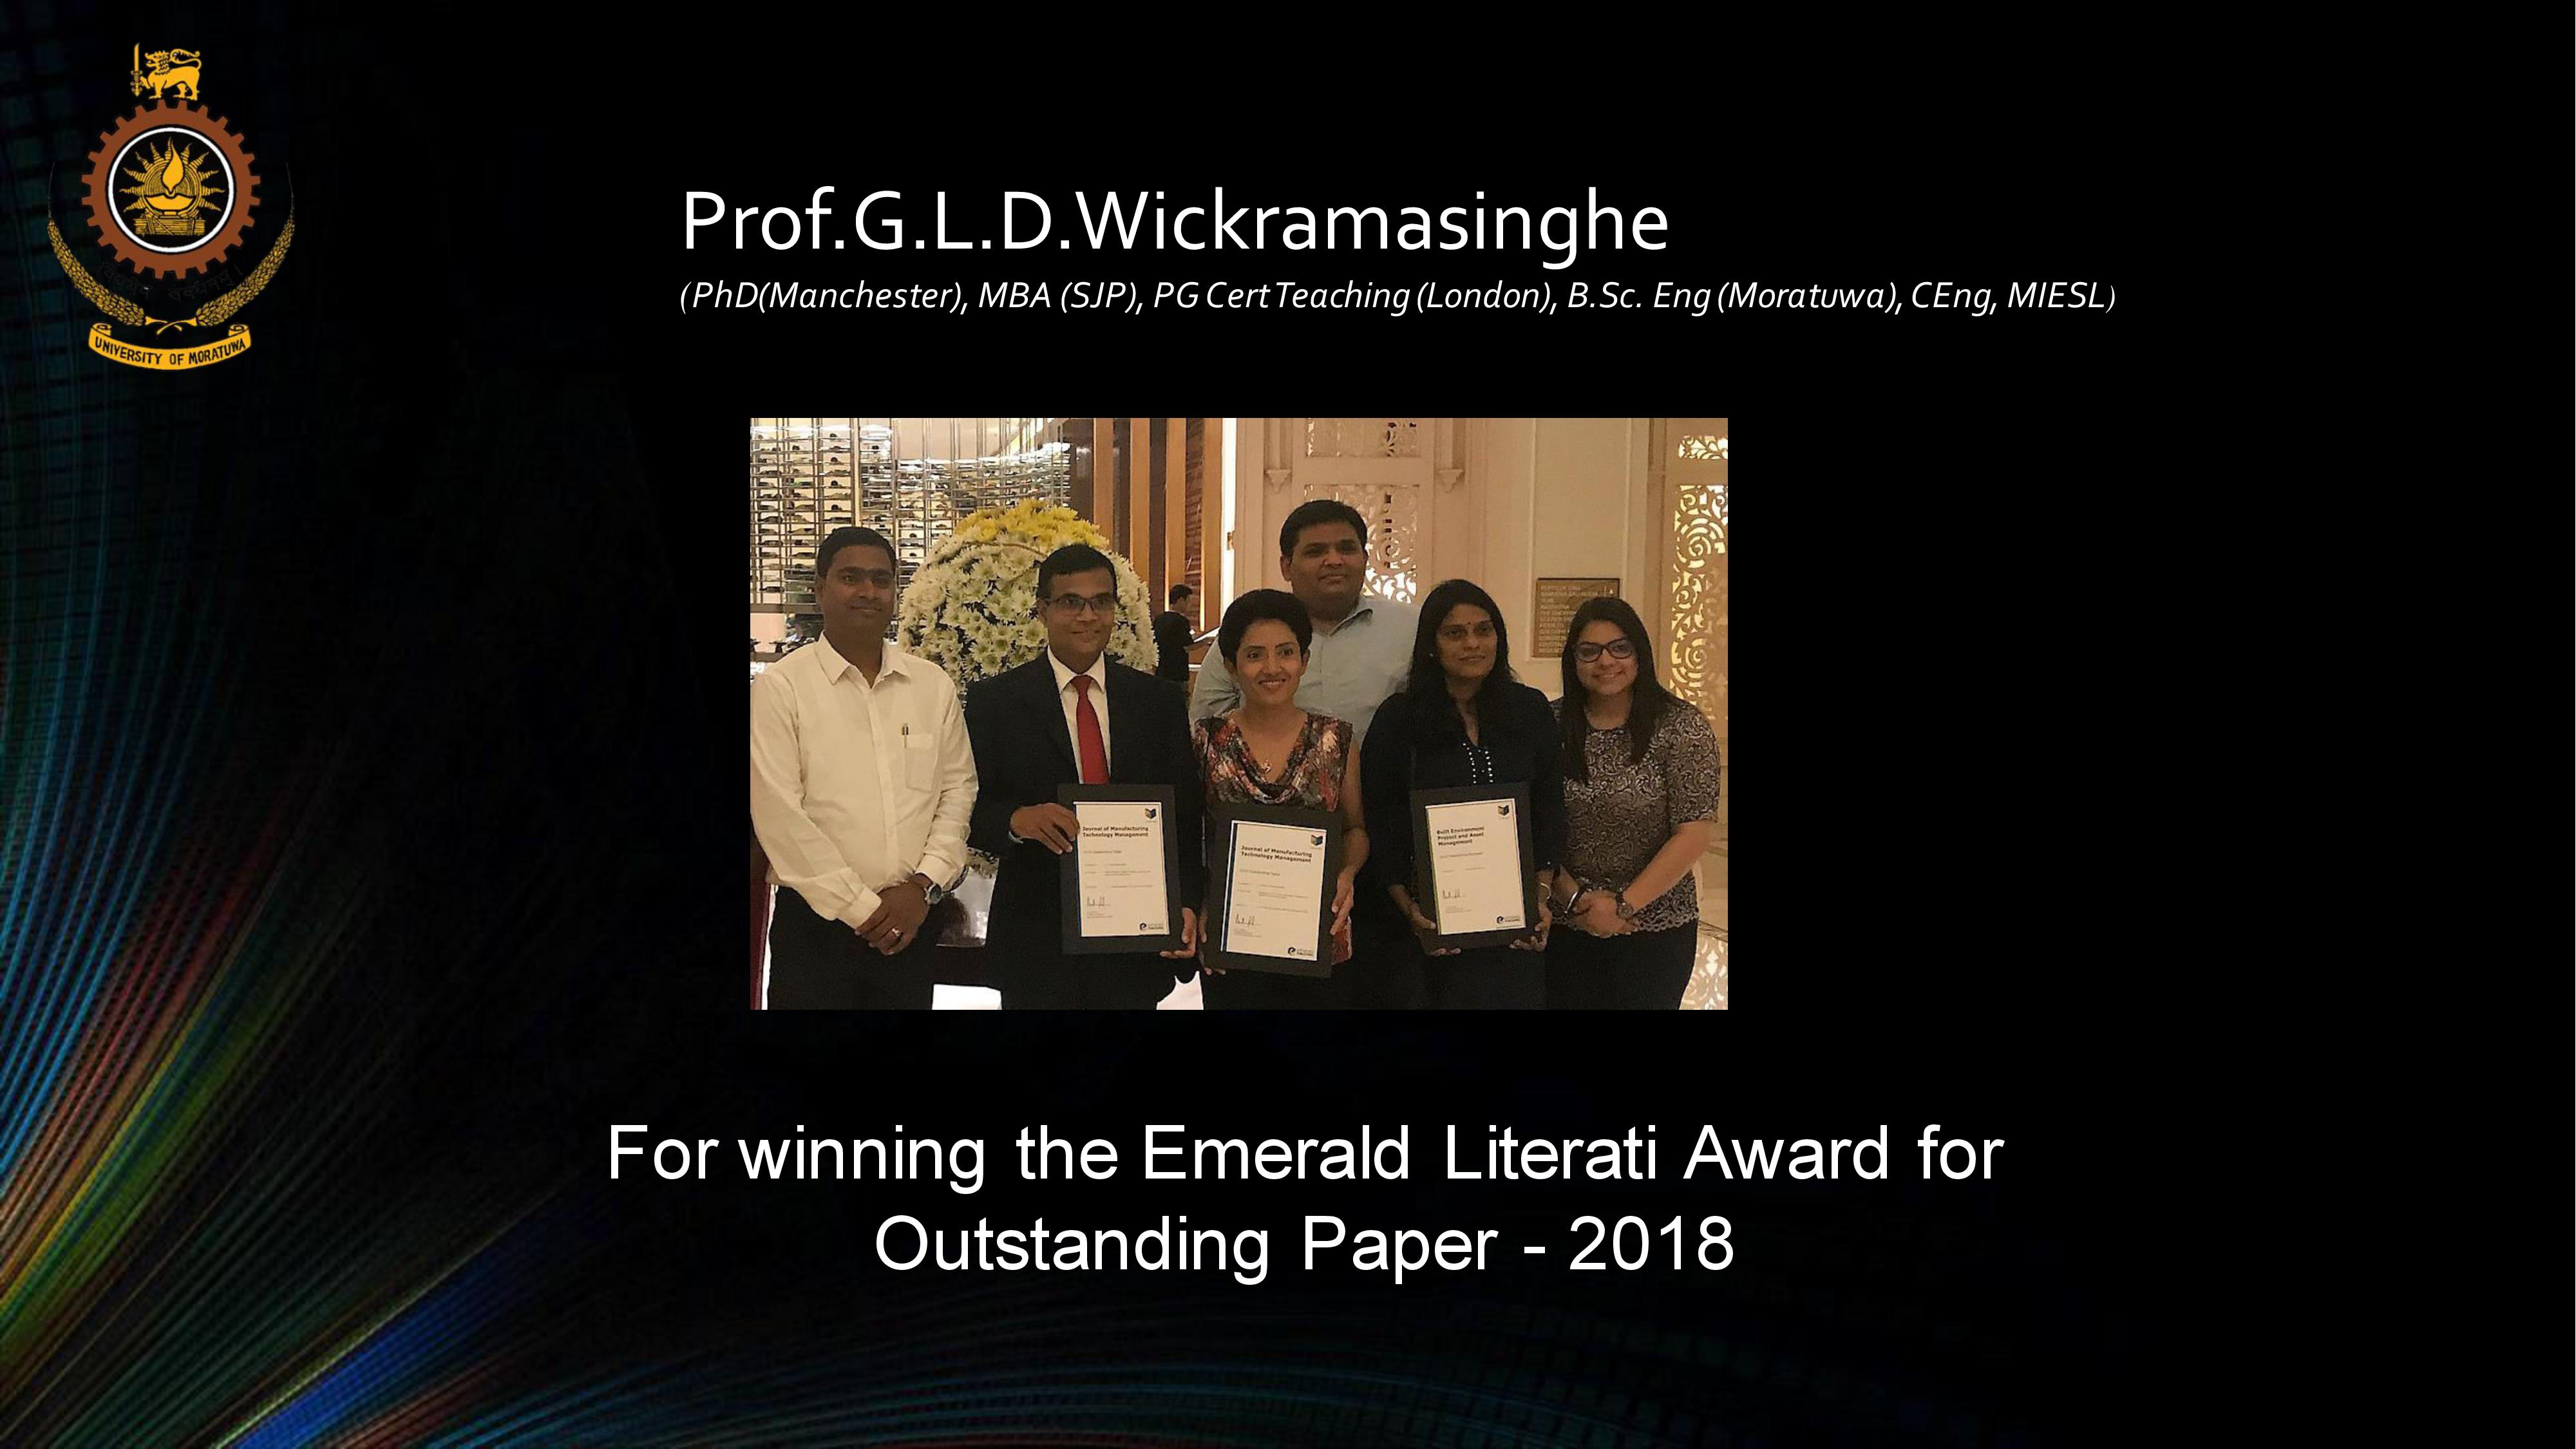 Winner of Emerald Literati Award for Outstanding Paper 2018